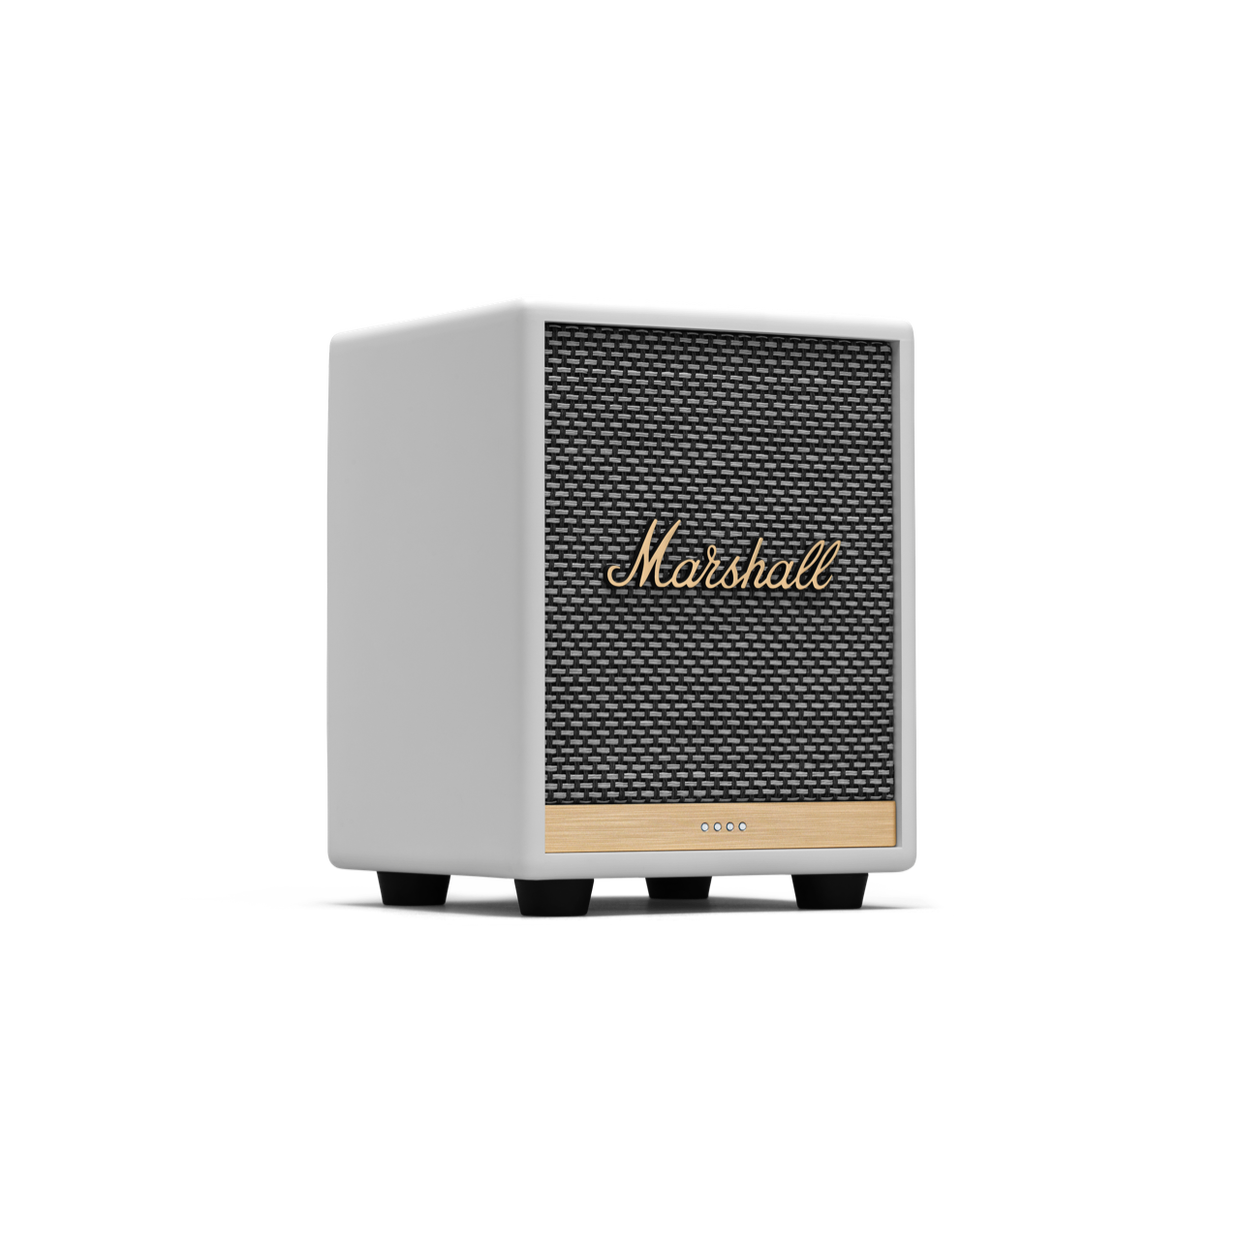 MARSHALL UXBRIDGE VOICE WITH THE GOOGLE ASSISTANT SPEAKER - WHITE